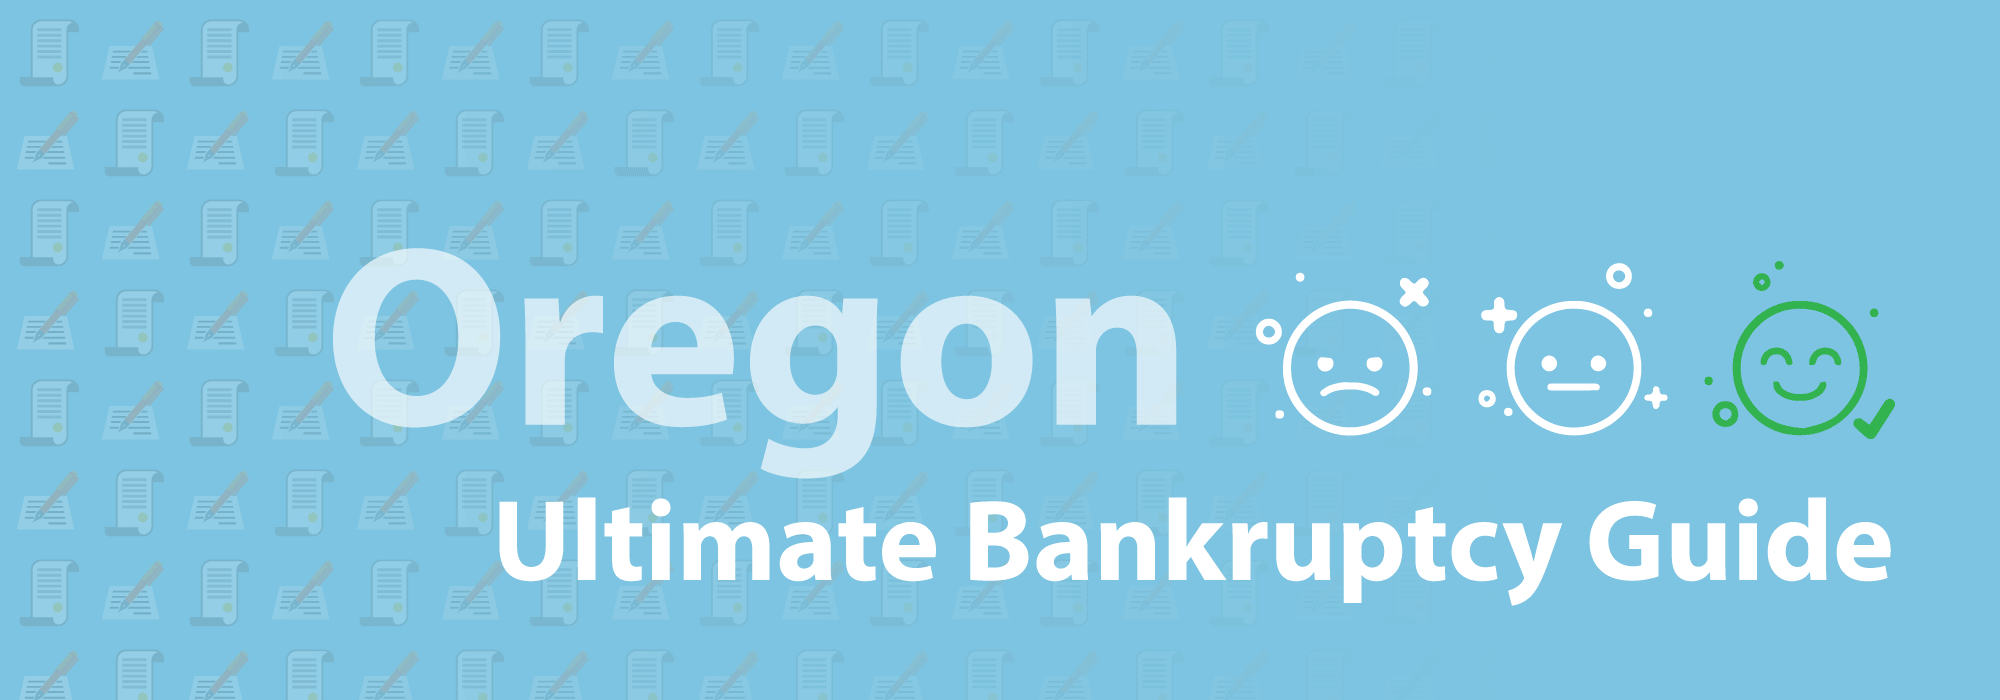 Oregon Personal Bankruptcy Guide